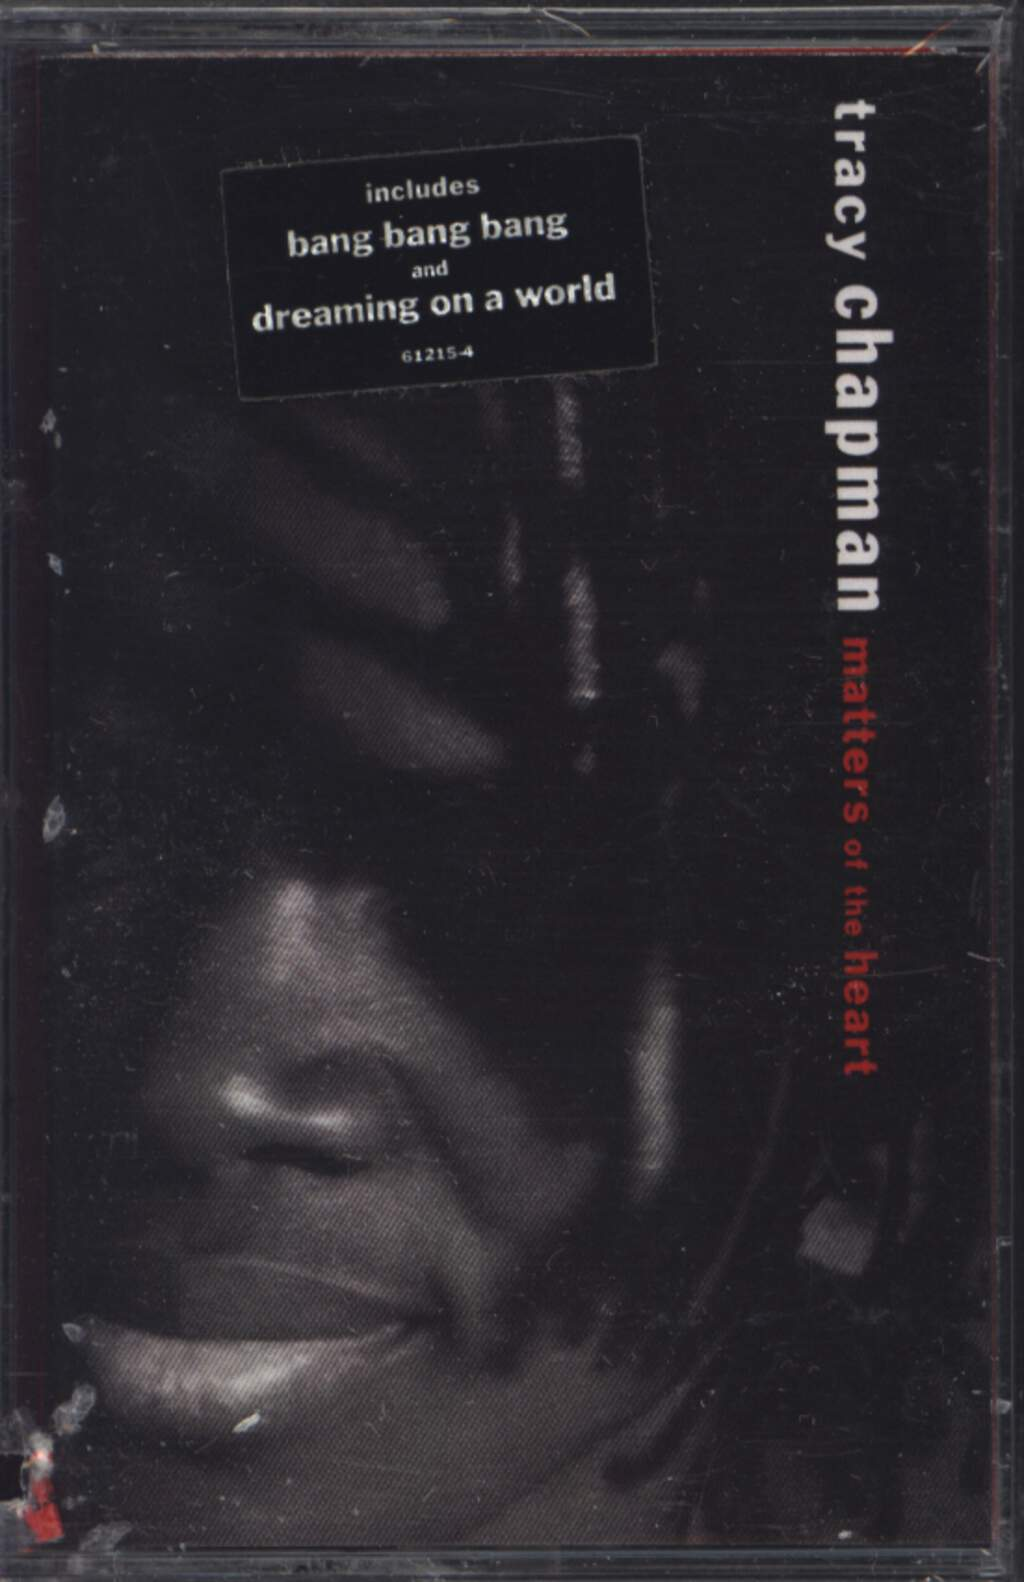 Tracy Chapman: Matters Of The Heart, Compact Cassette